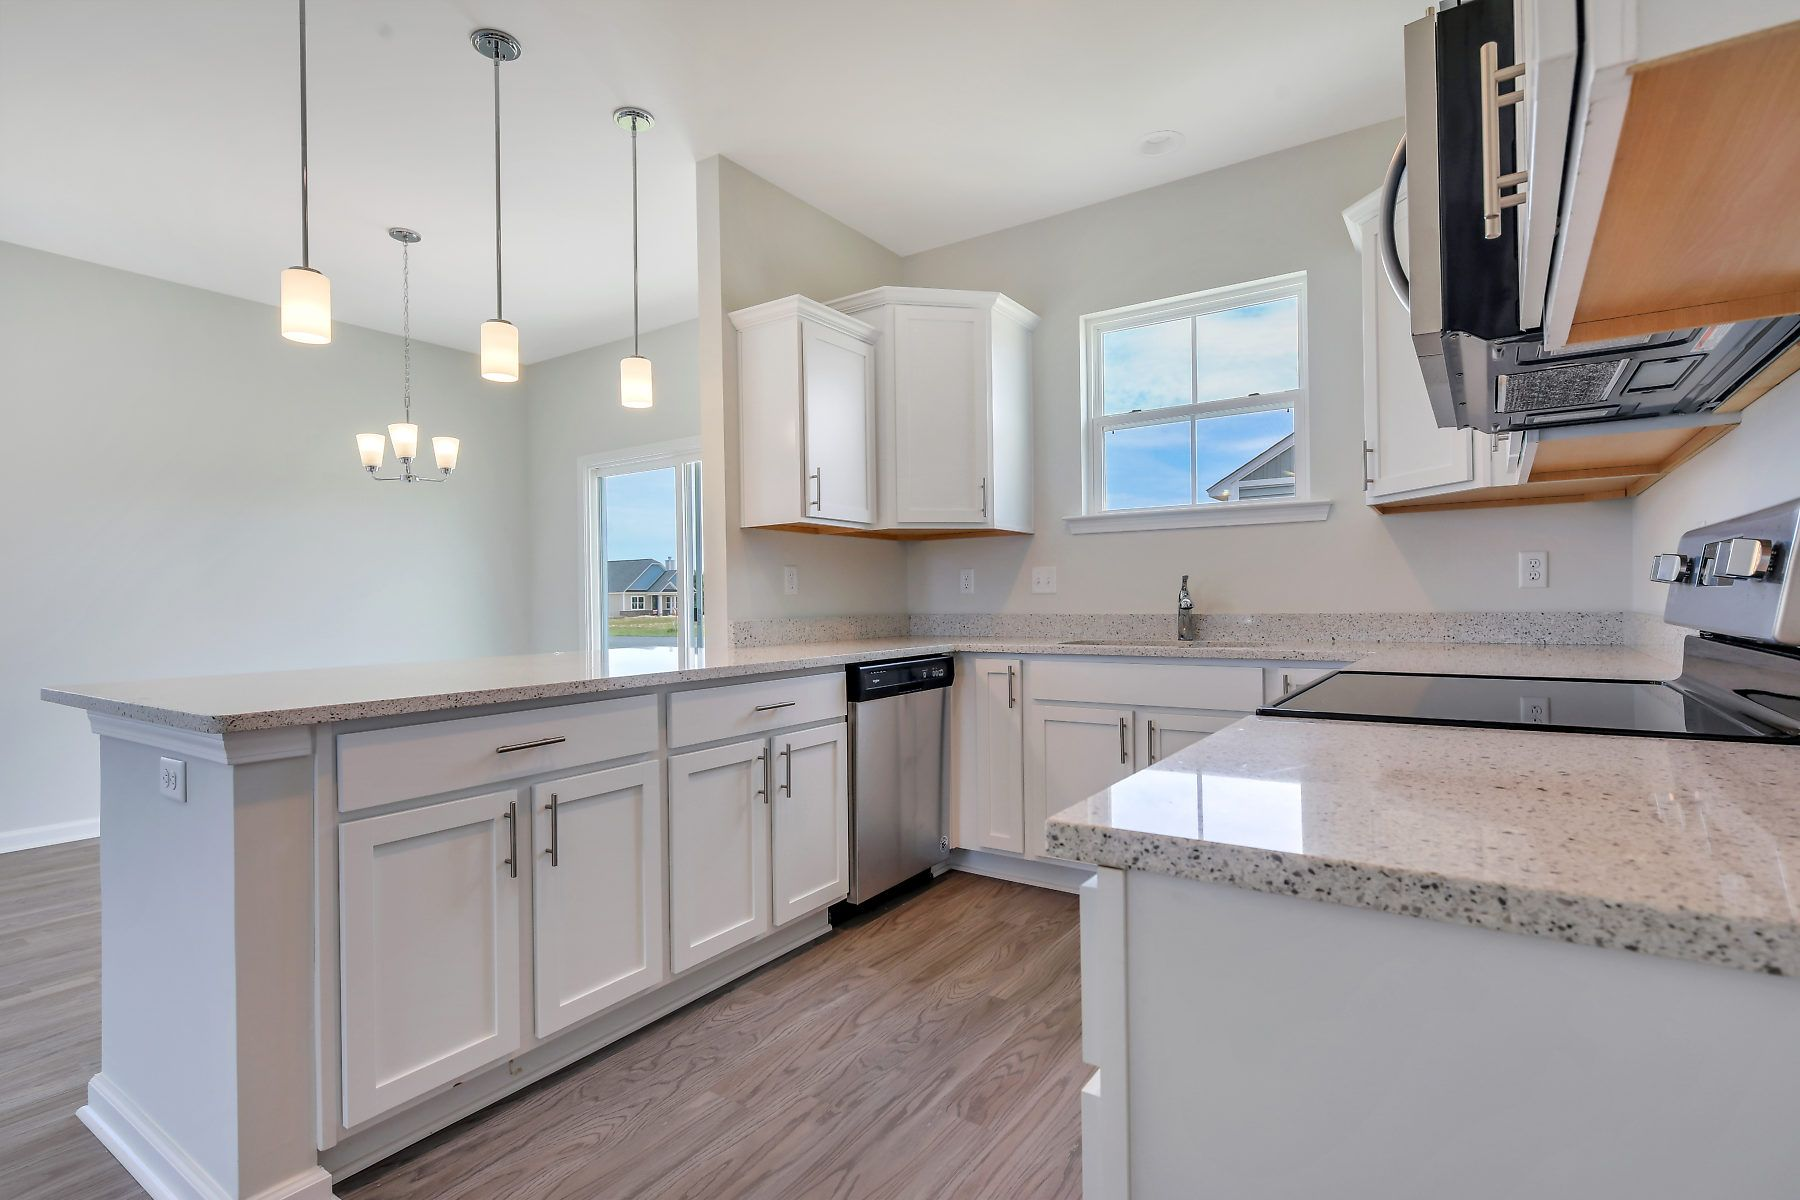 Kitchen featured in The Katherine By Village Park Homes in Hilton Head, SC